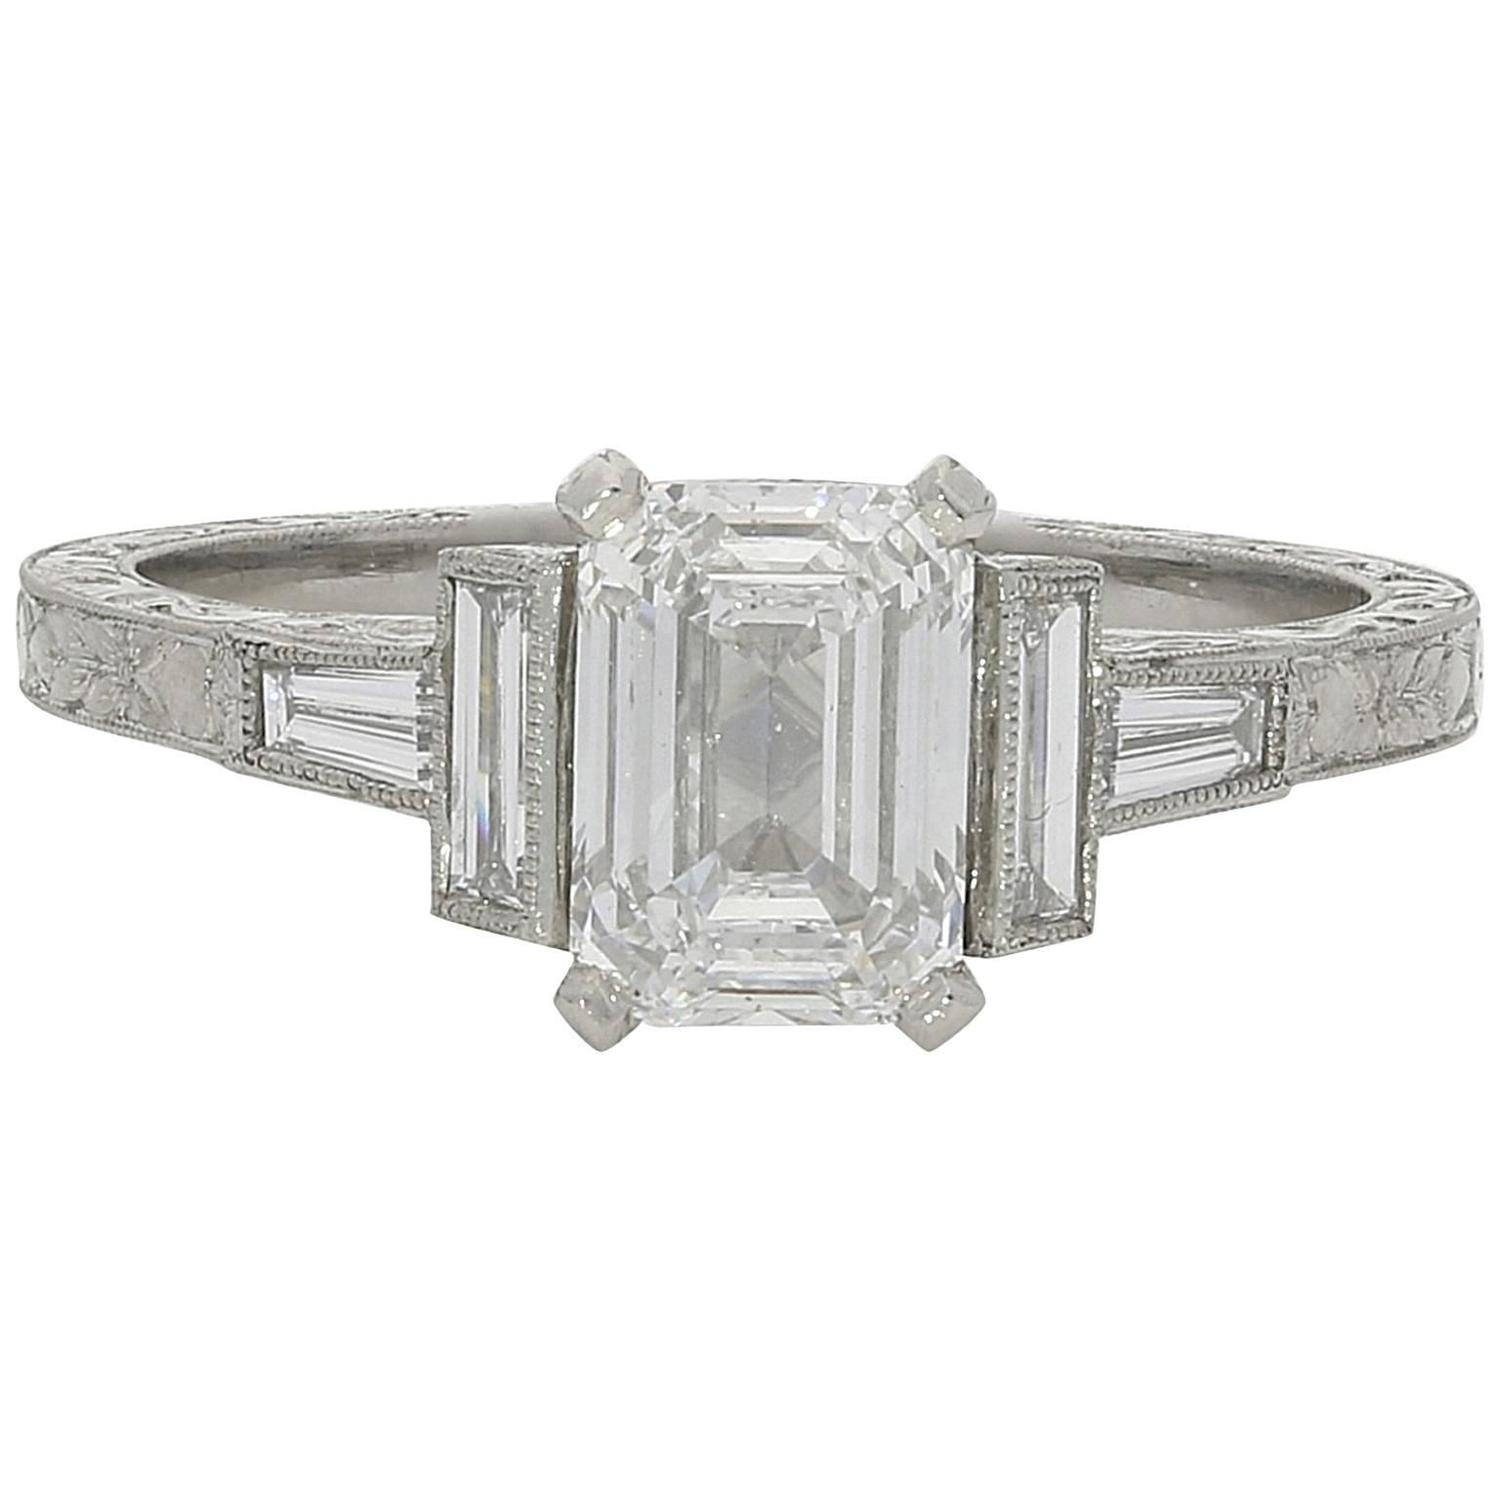 1 21ct d vs2 emerald cut ring with